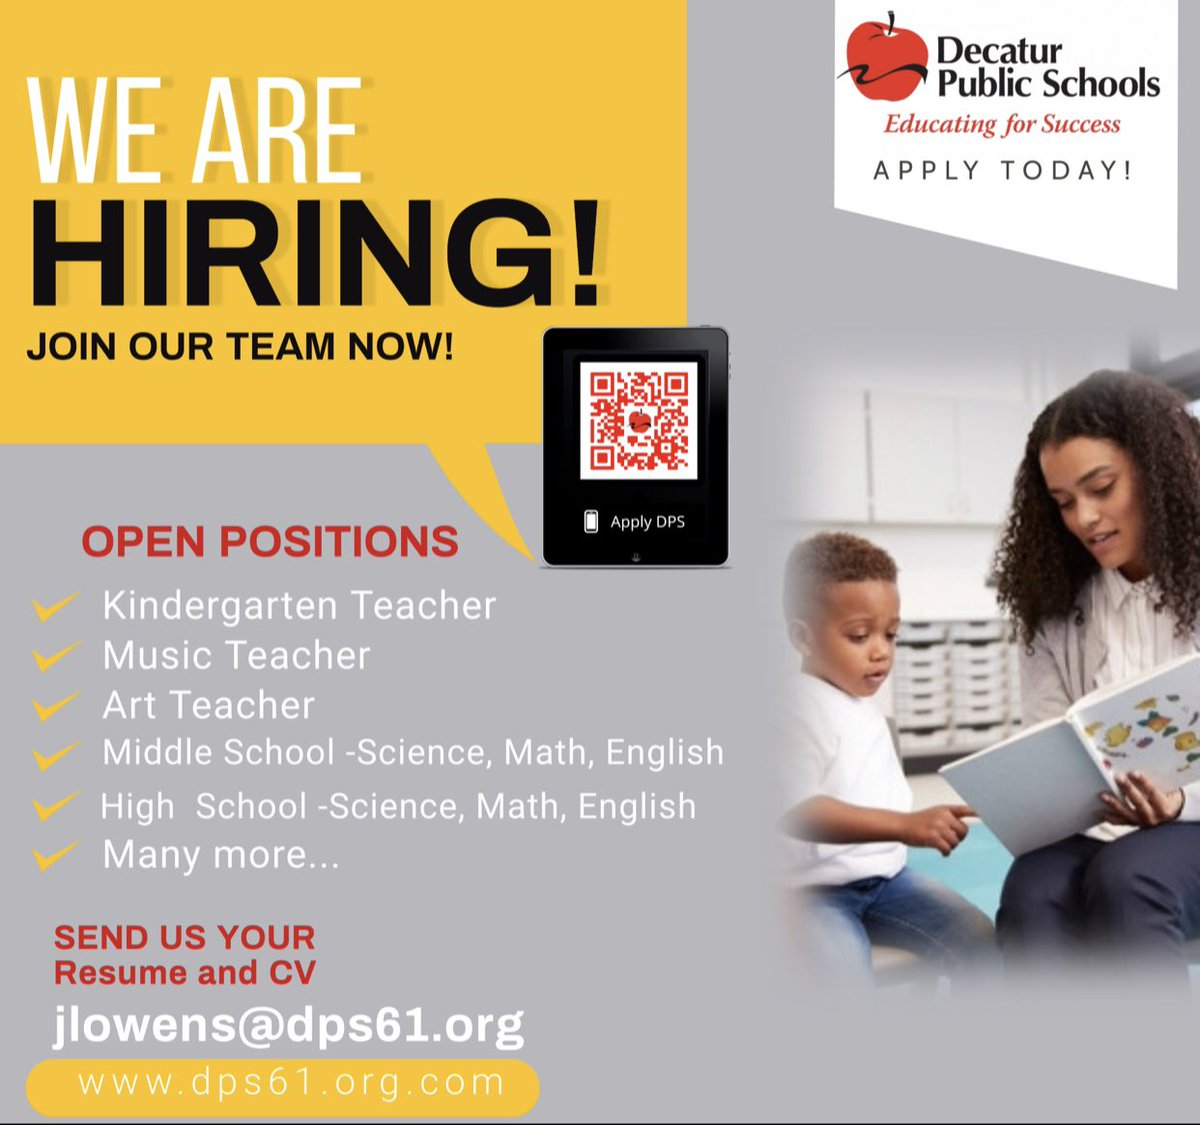 RT @JeyShow: DPS is seeking certified teachers to join our team of dynamic educators!  APPLY TODAY!